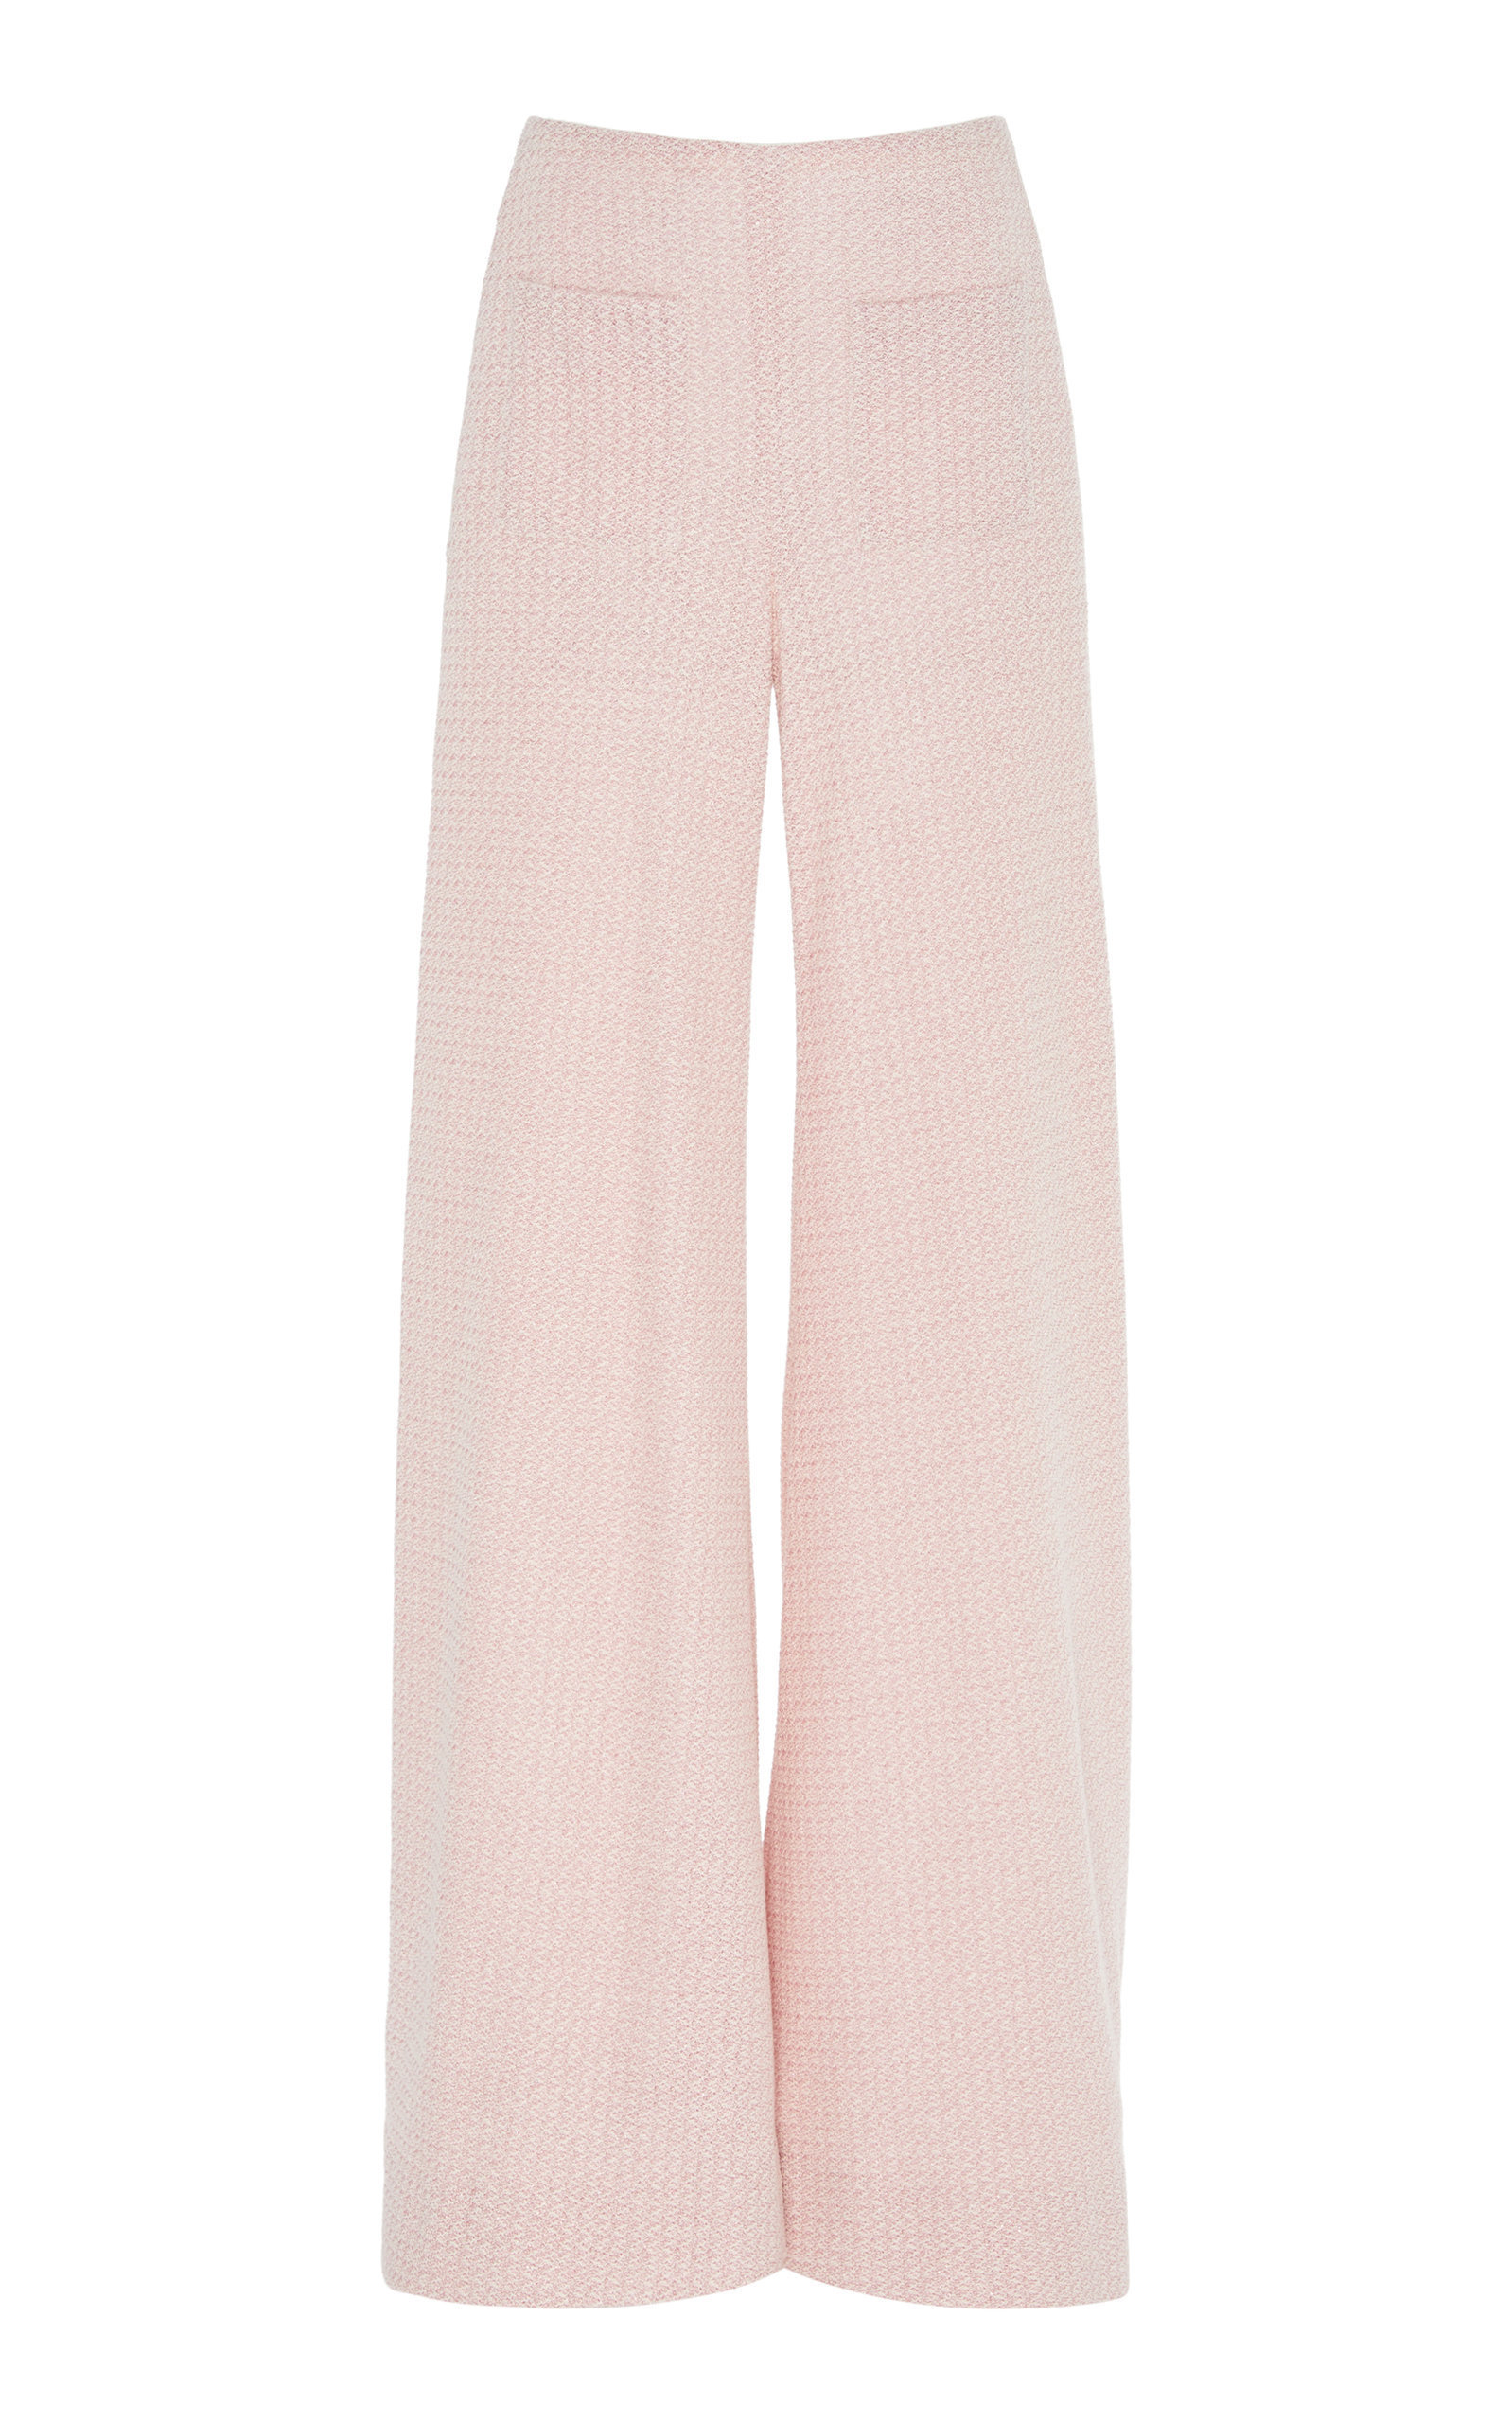 WOVEN FLARED TROUSERS